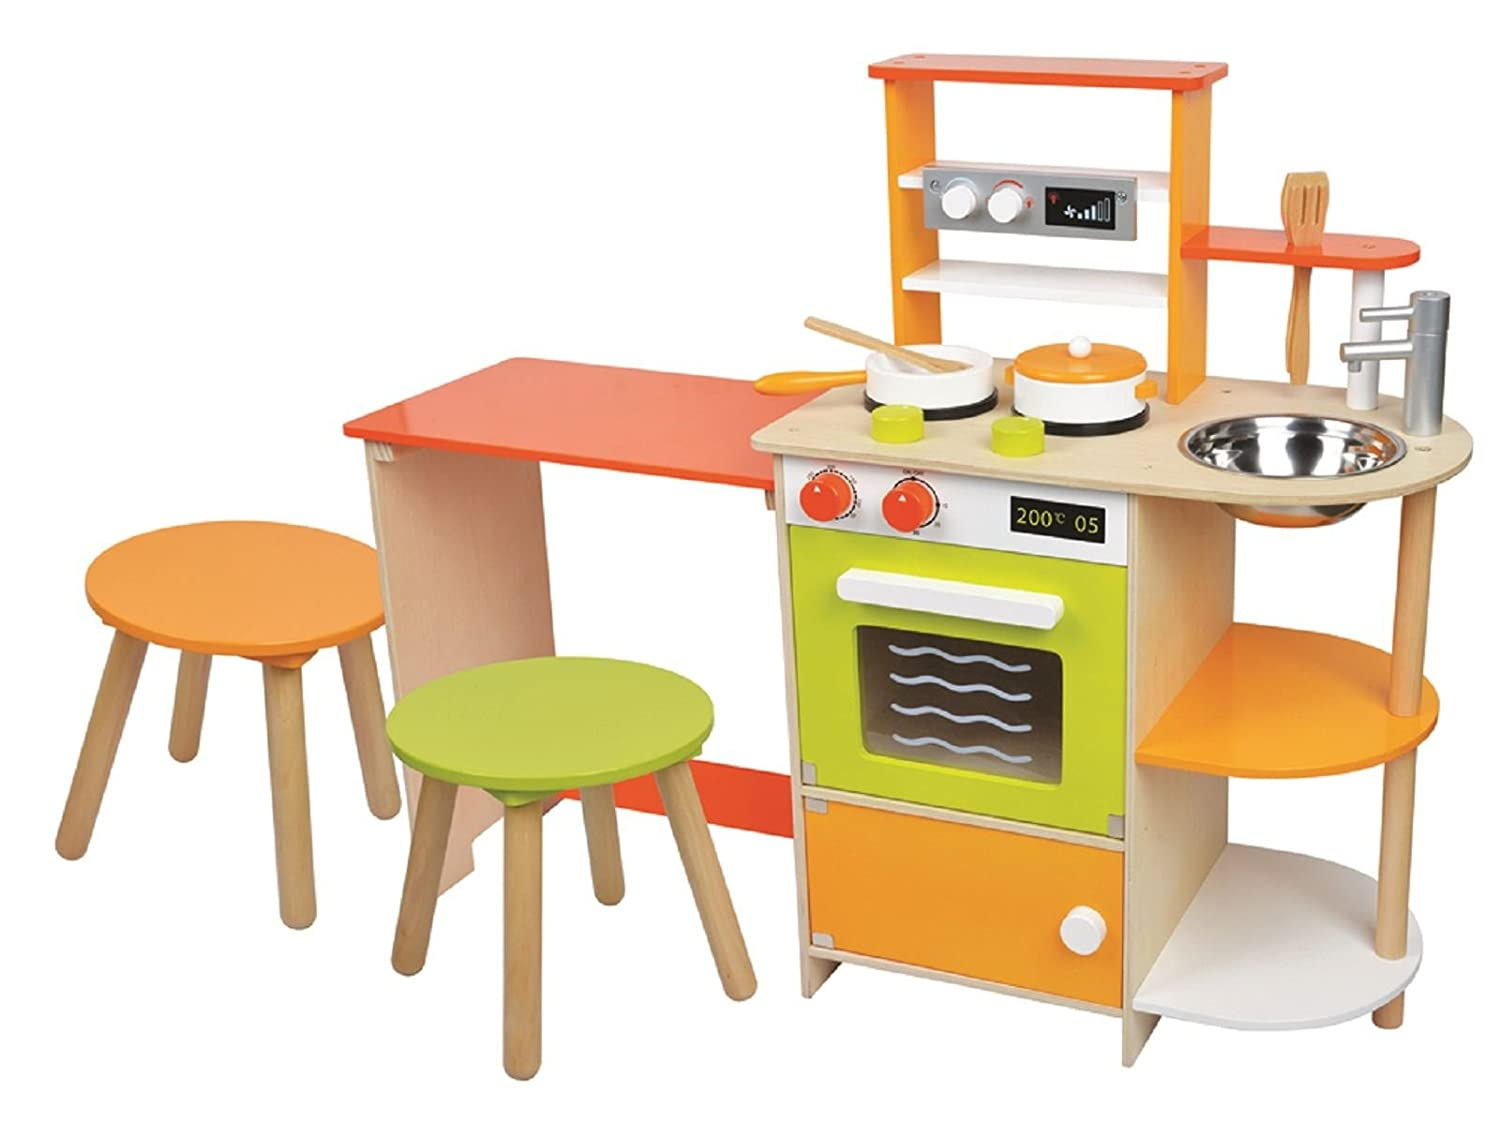 lelin wooden childrens 2 in 1 pretend play kitchen and dining room set amazoncouk toys games - Wooden Kitchen Set